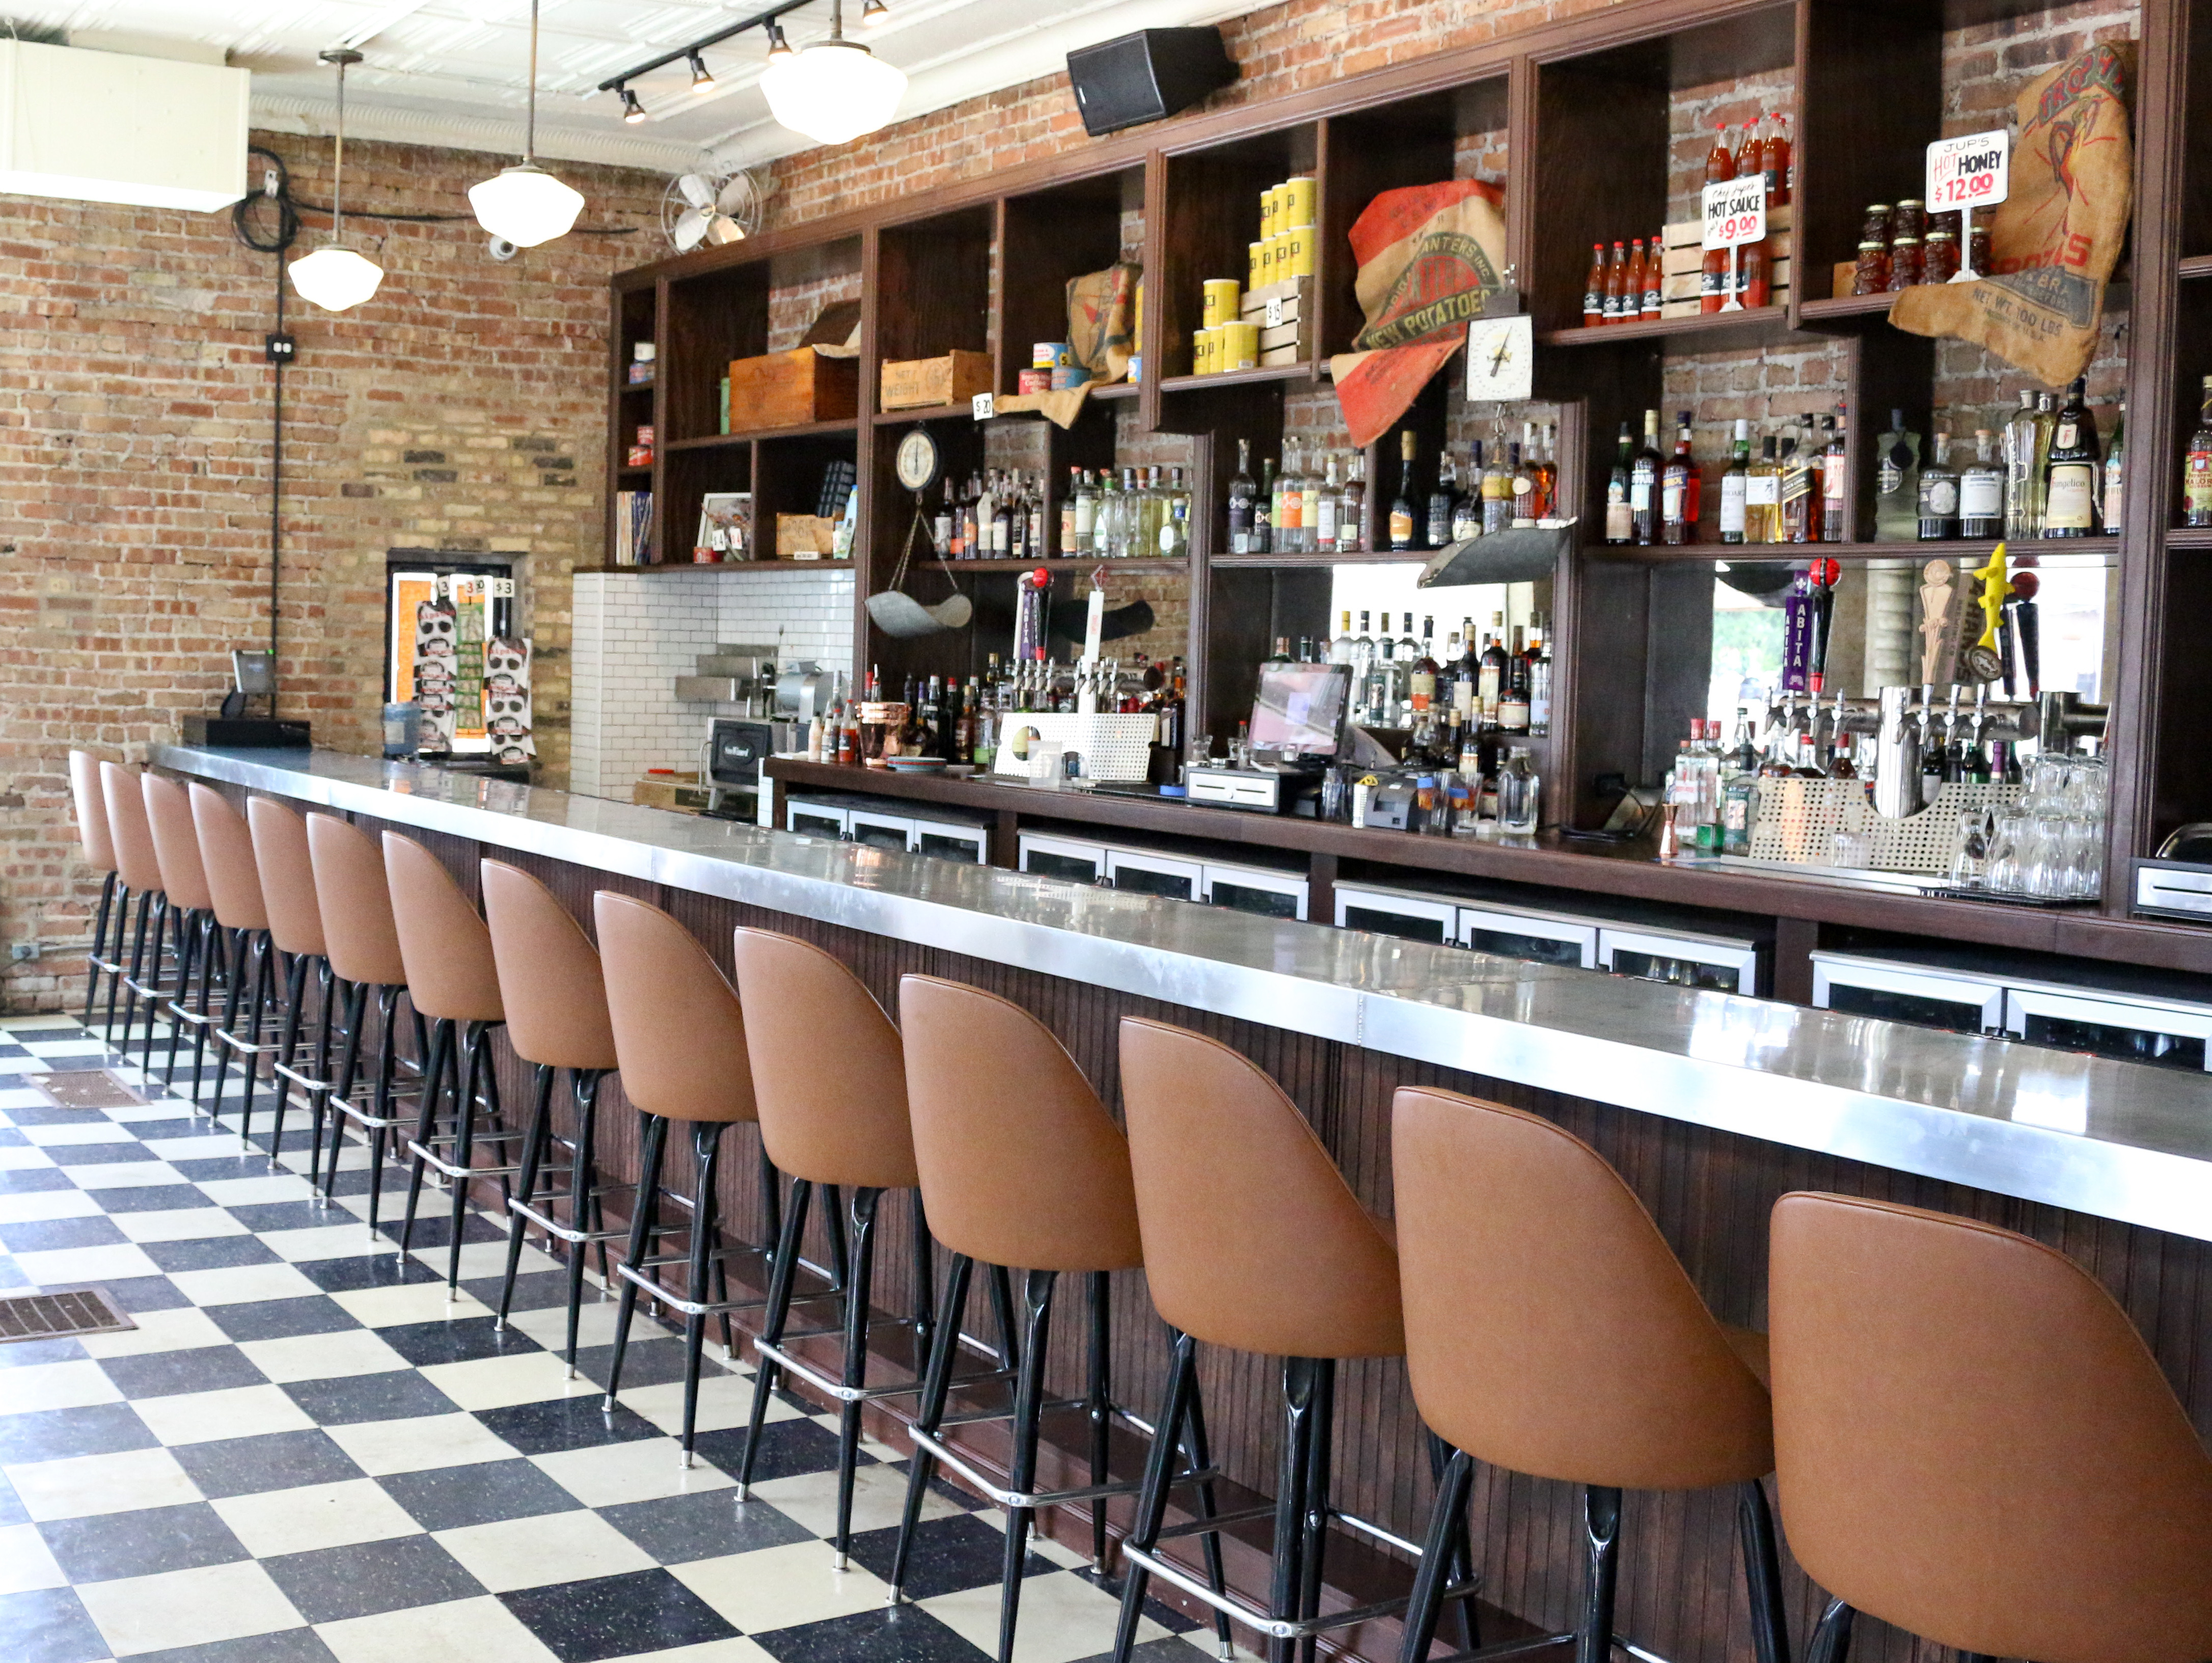 dcbf431c669 The Best Restaurants In Wicker Park - Wicker Park - Chicago - The  Infatuation